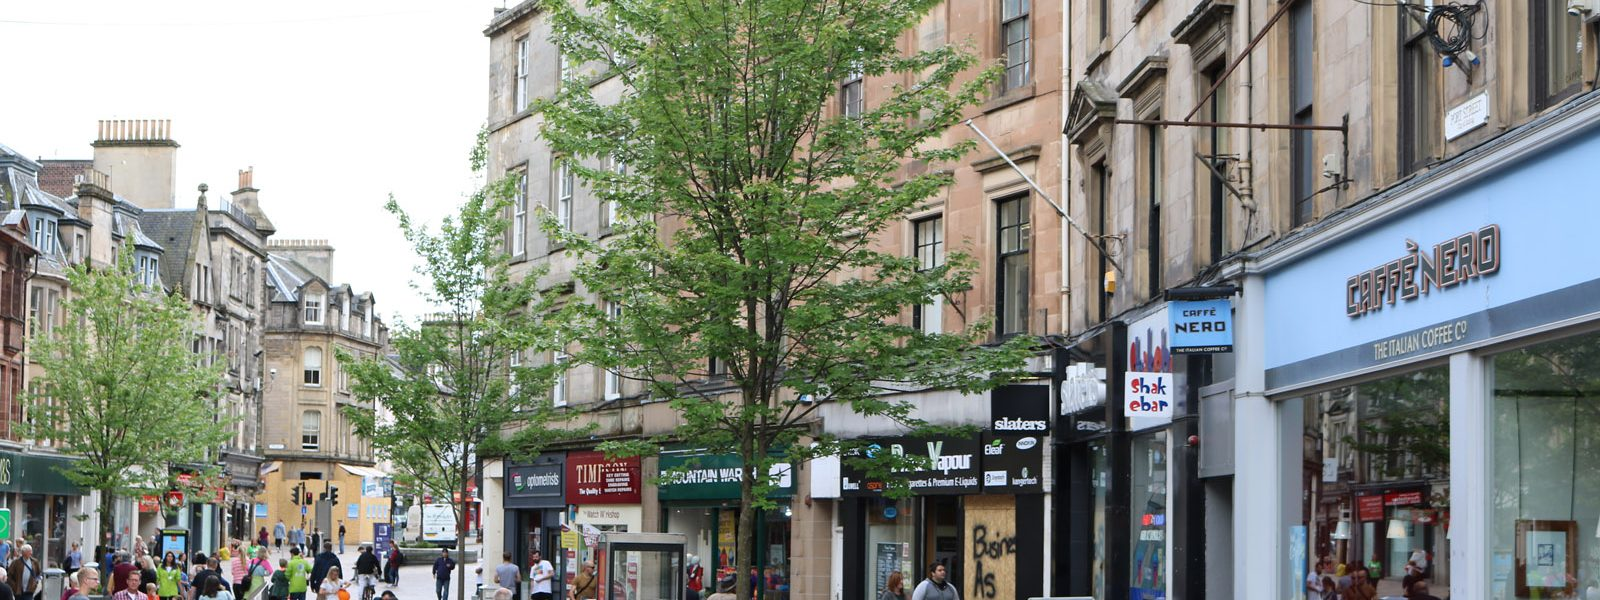 Stirling is a regional shopping destination with over 500 vibrant city centre businesses